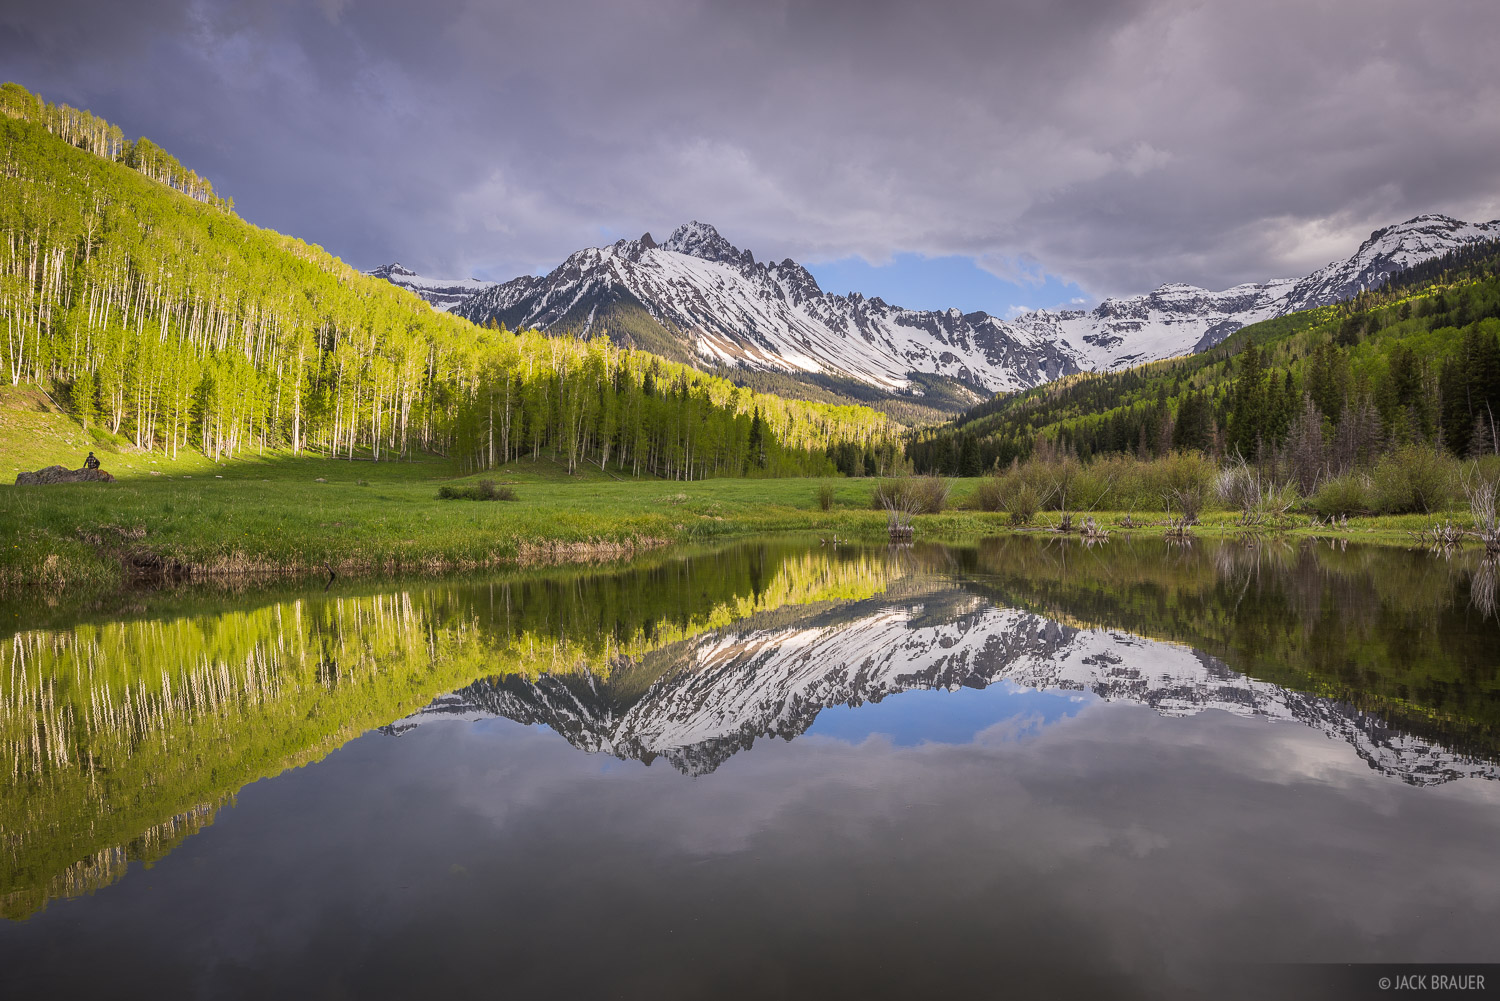 Colorado,Mt. Sneffels,San Juan Mountains,Sneffels Range, aspens, June, green, photo